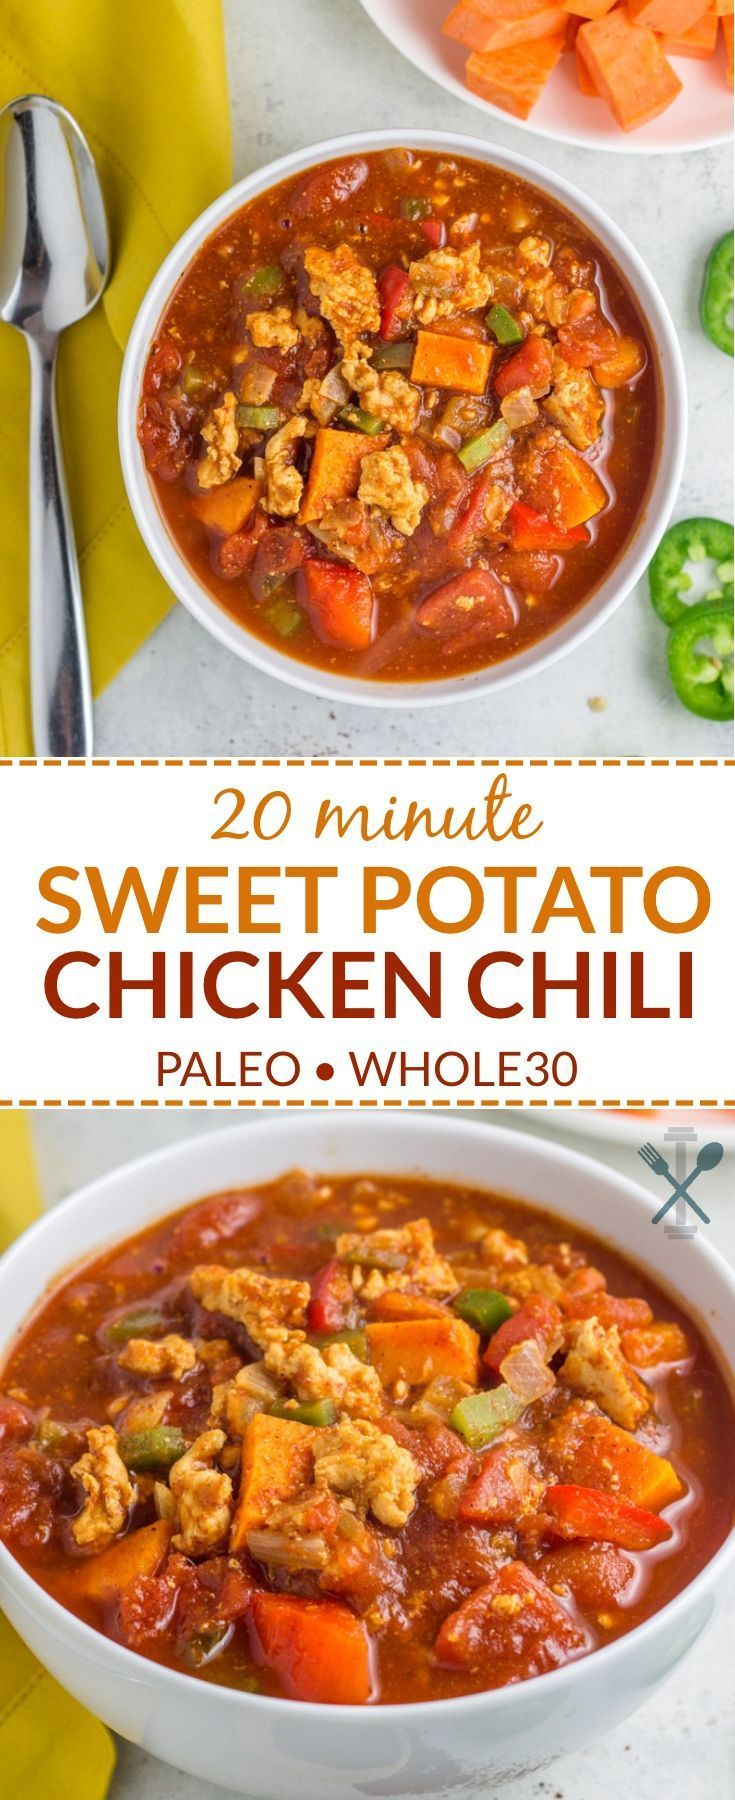 20 Minute Sweet Potato Chicken Chili